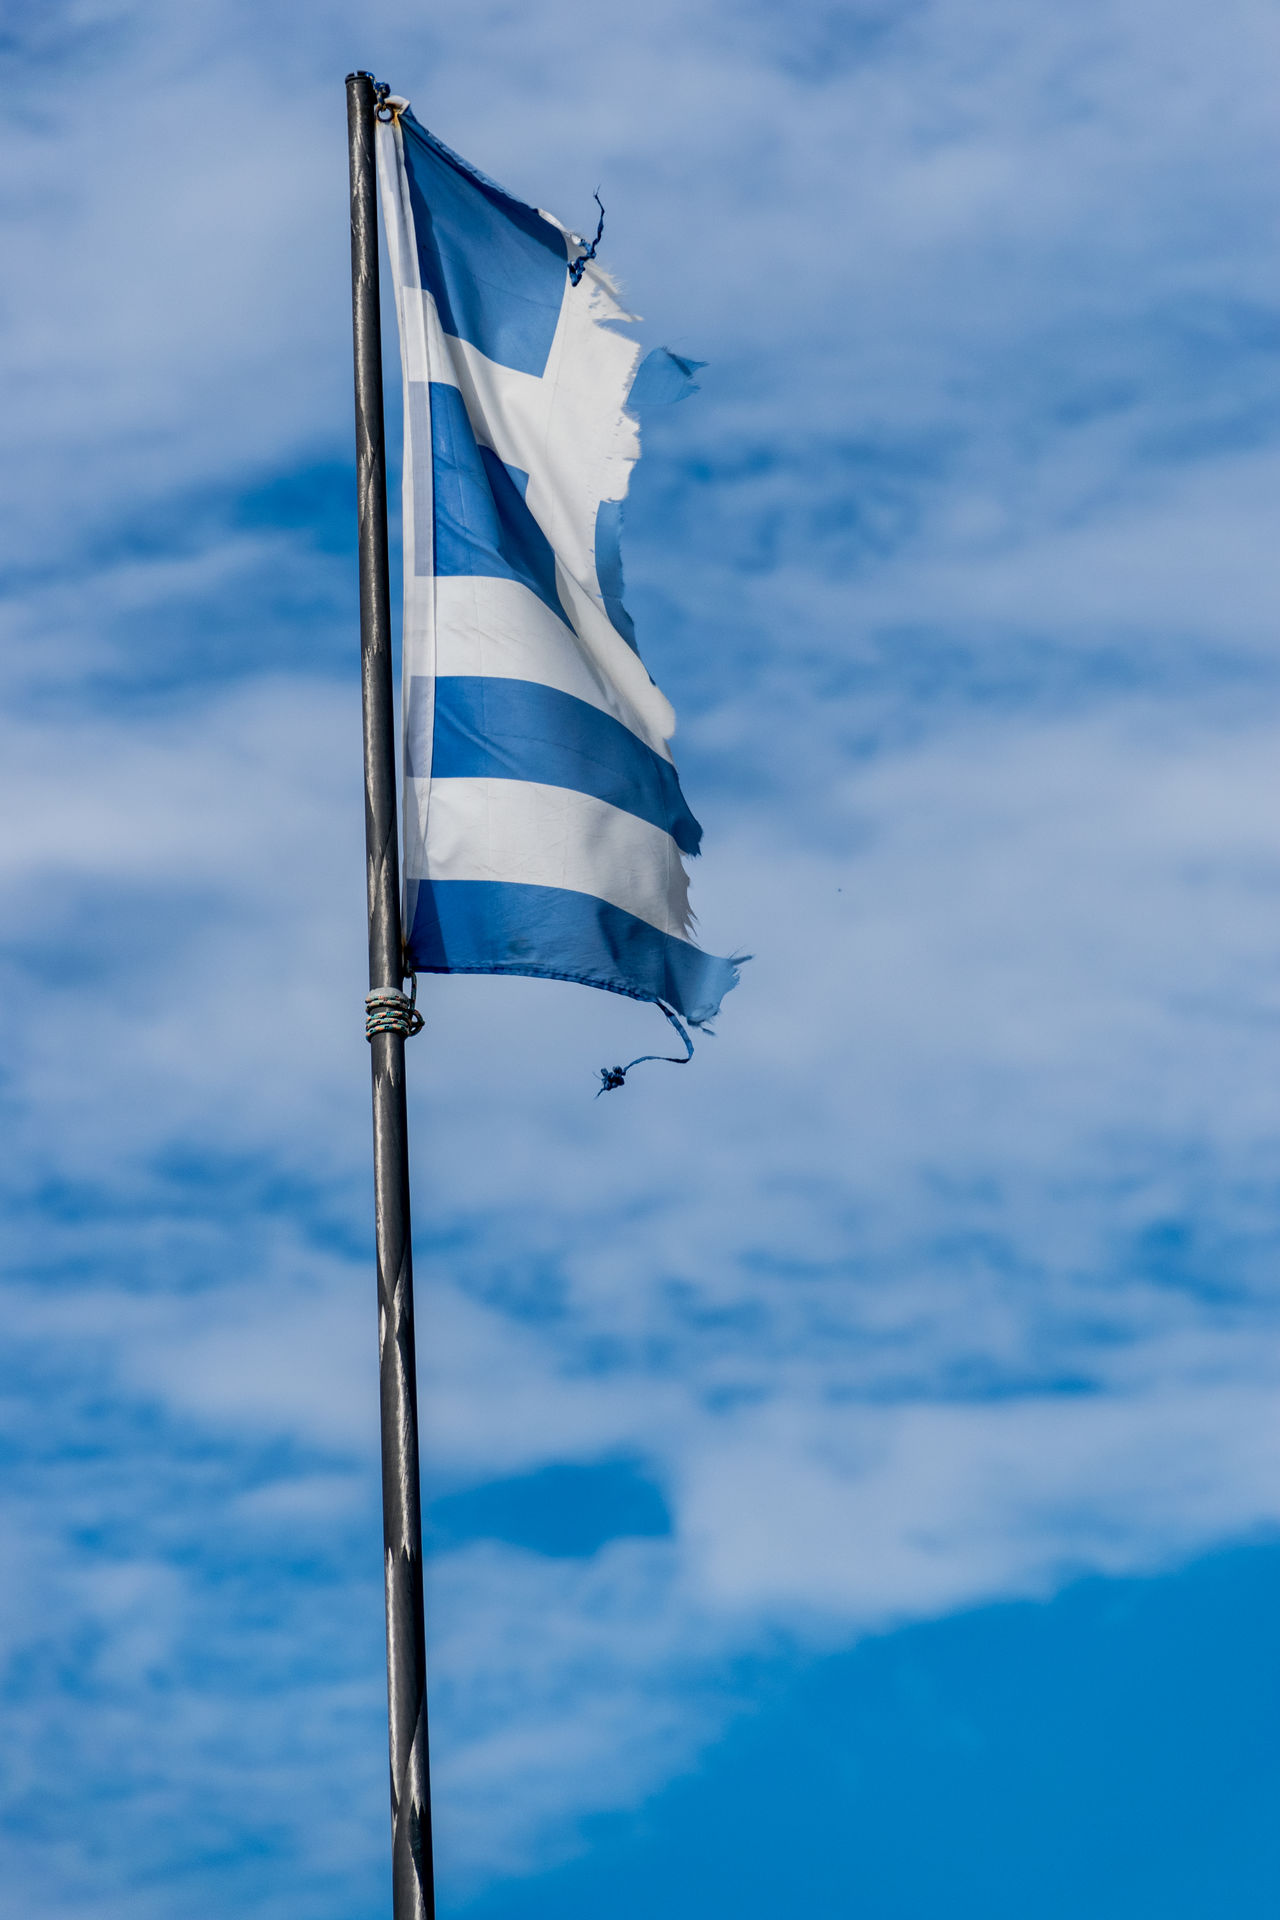 it really saddens me to see such a great country laying torn apart. This huge potential is just wasted on so many levels - no one takes care of the old cultural places... :-( Abandoned Blue Cloud - Sky Debt Flag Flags In The Wind  Greece Greek Greek Flag Greek Islands Greek Symbols No Money Poor  Ripped Ruined Shredded Sky Status Status Quo Tattered Torn White